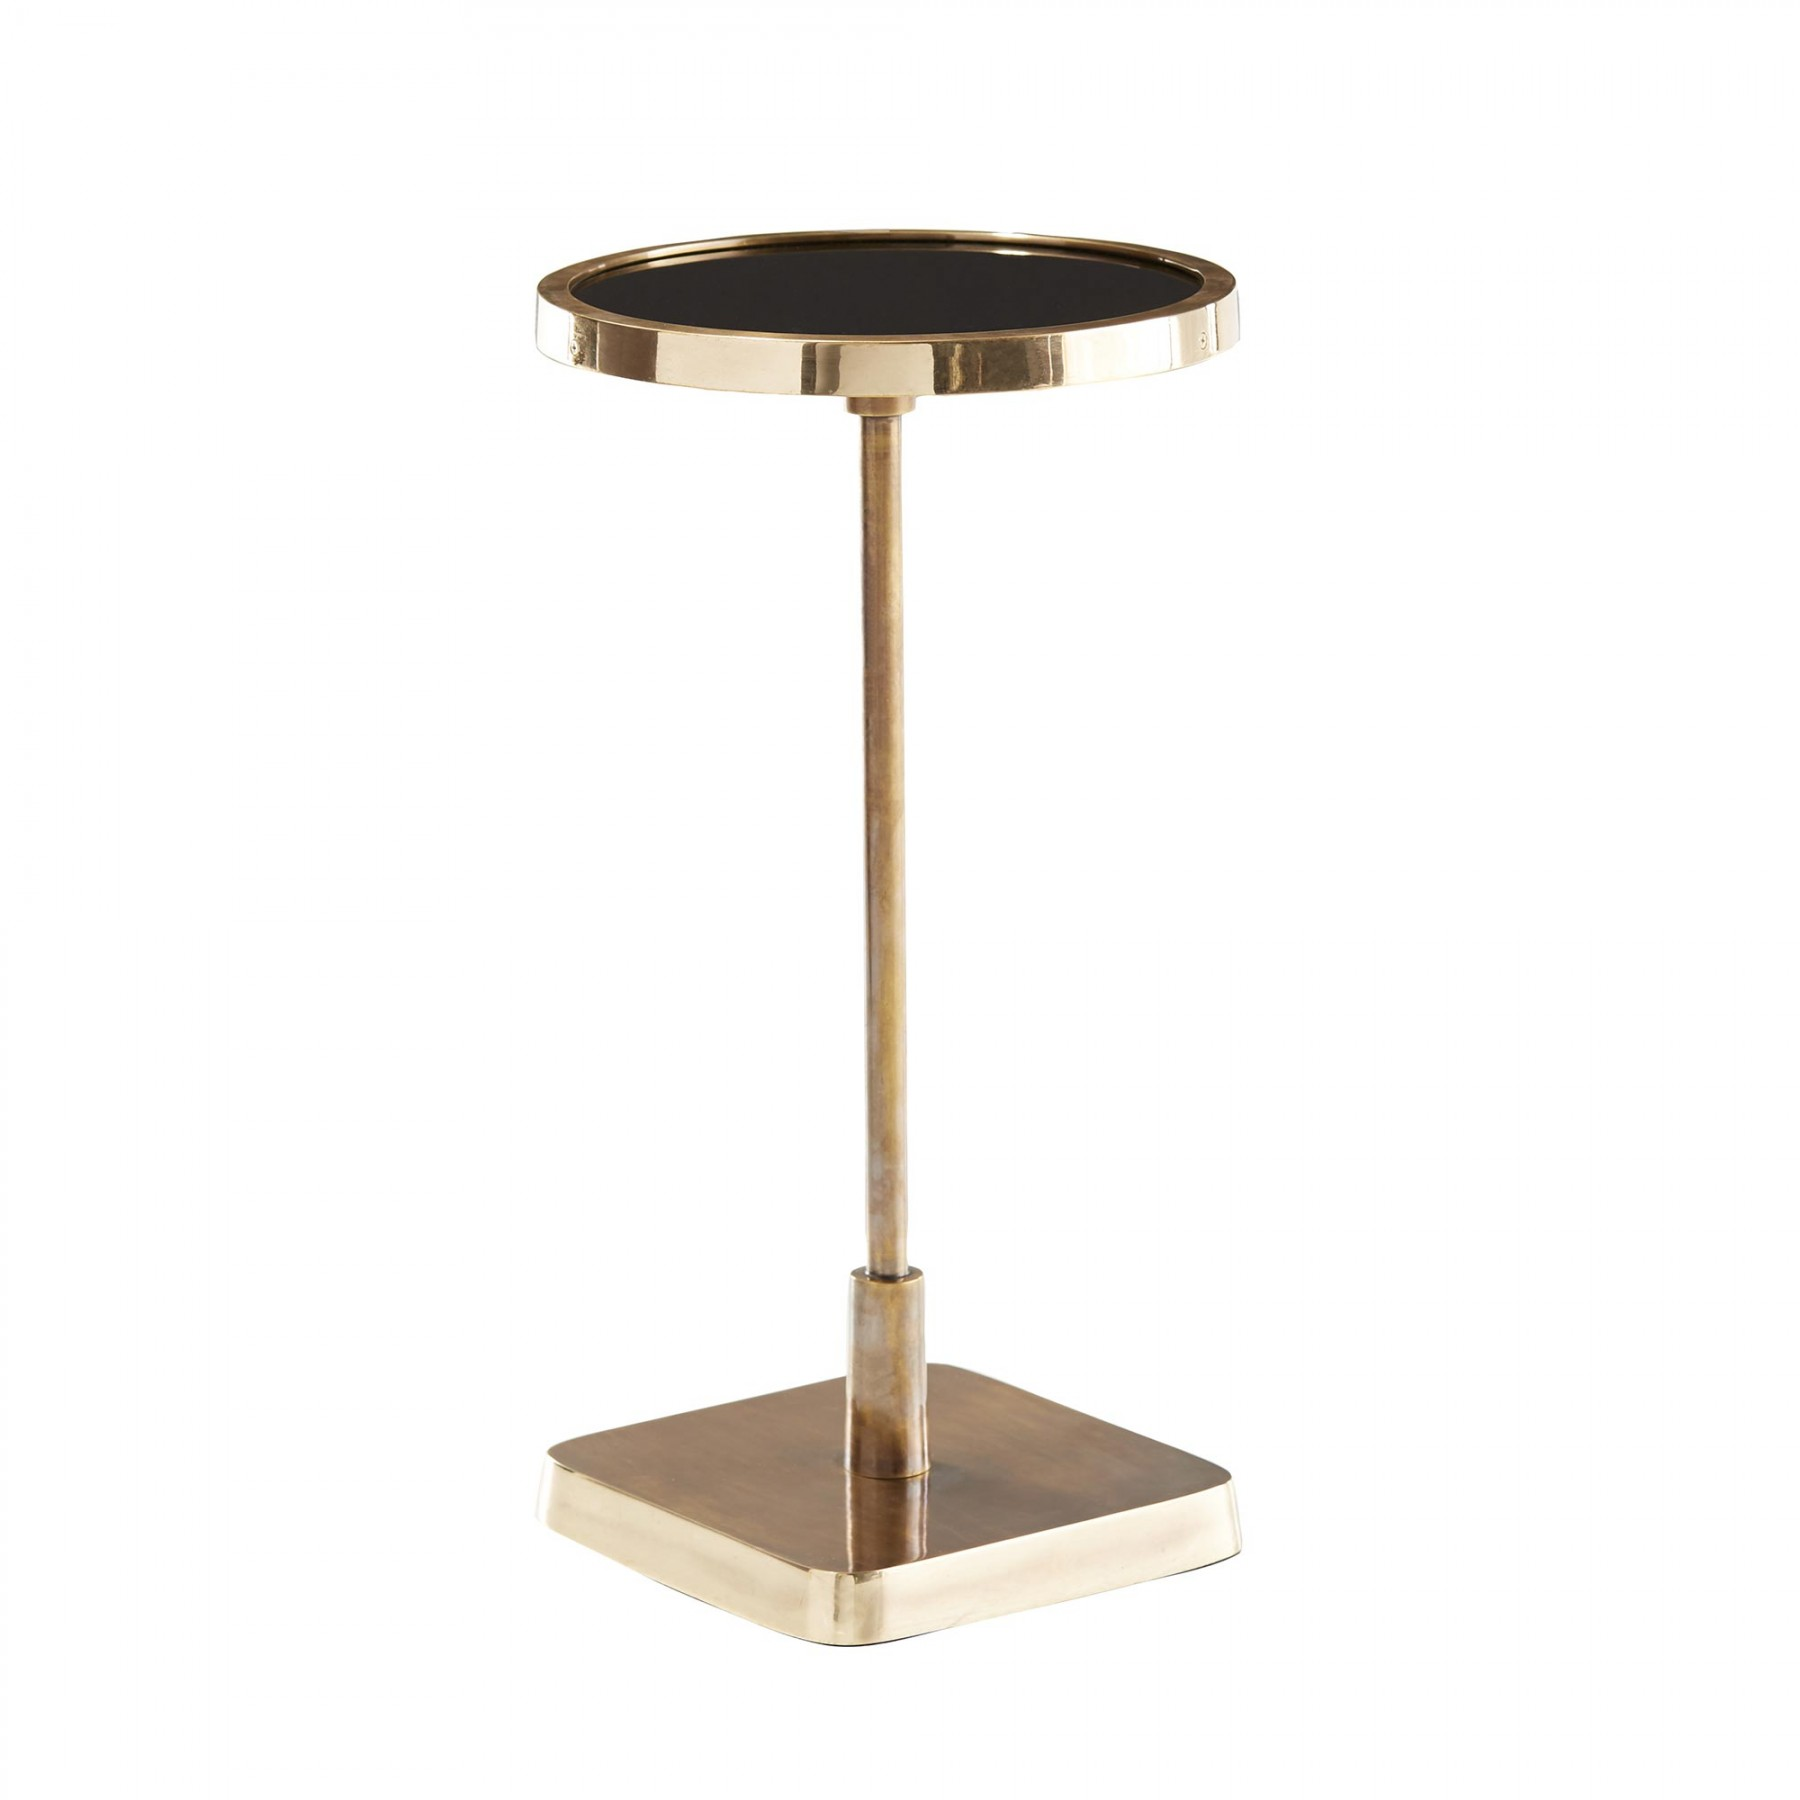 kaela round accent table tables with matching mirrors glass metal end pedestal dining room patio umbrella small square pier one chairs kitchen counter studded nate berkus sheets